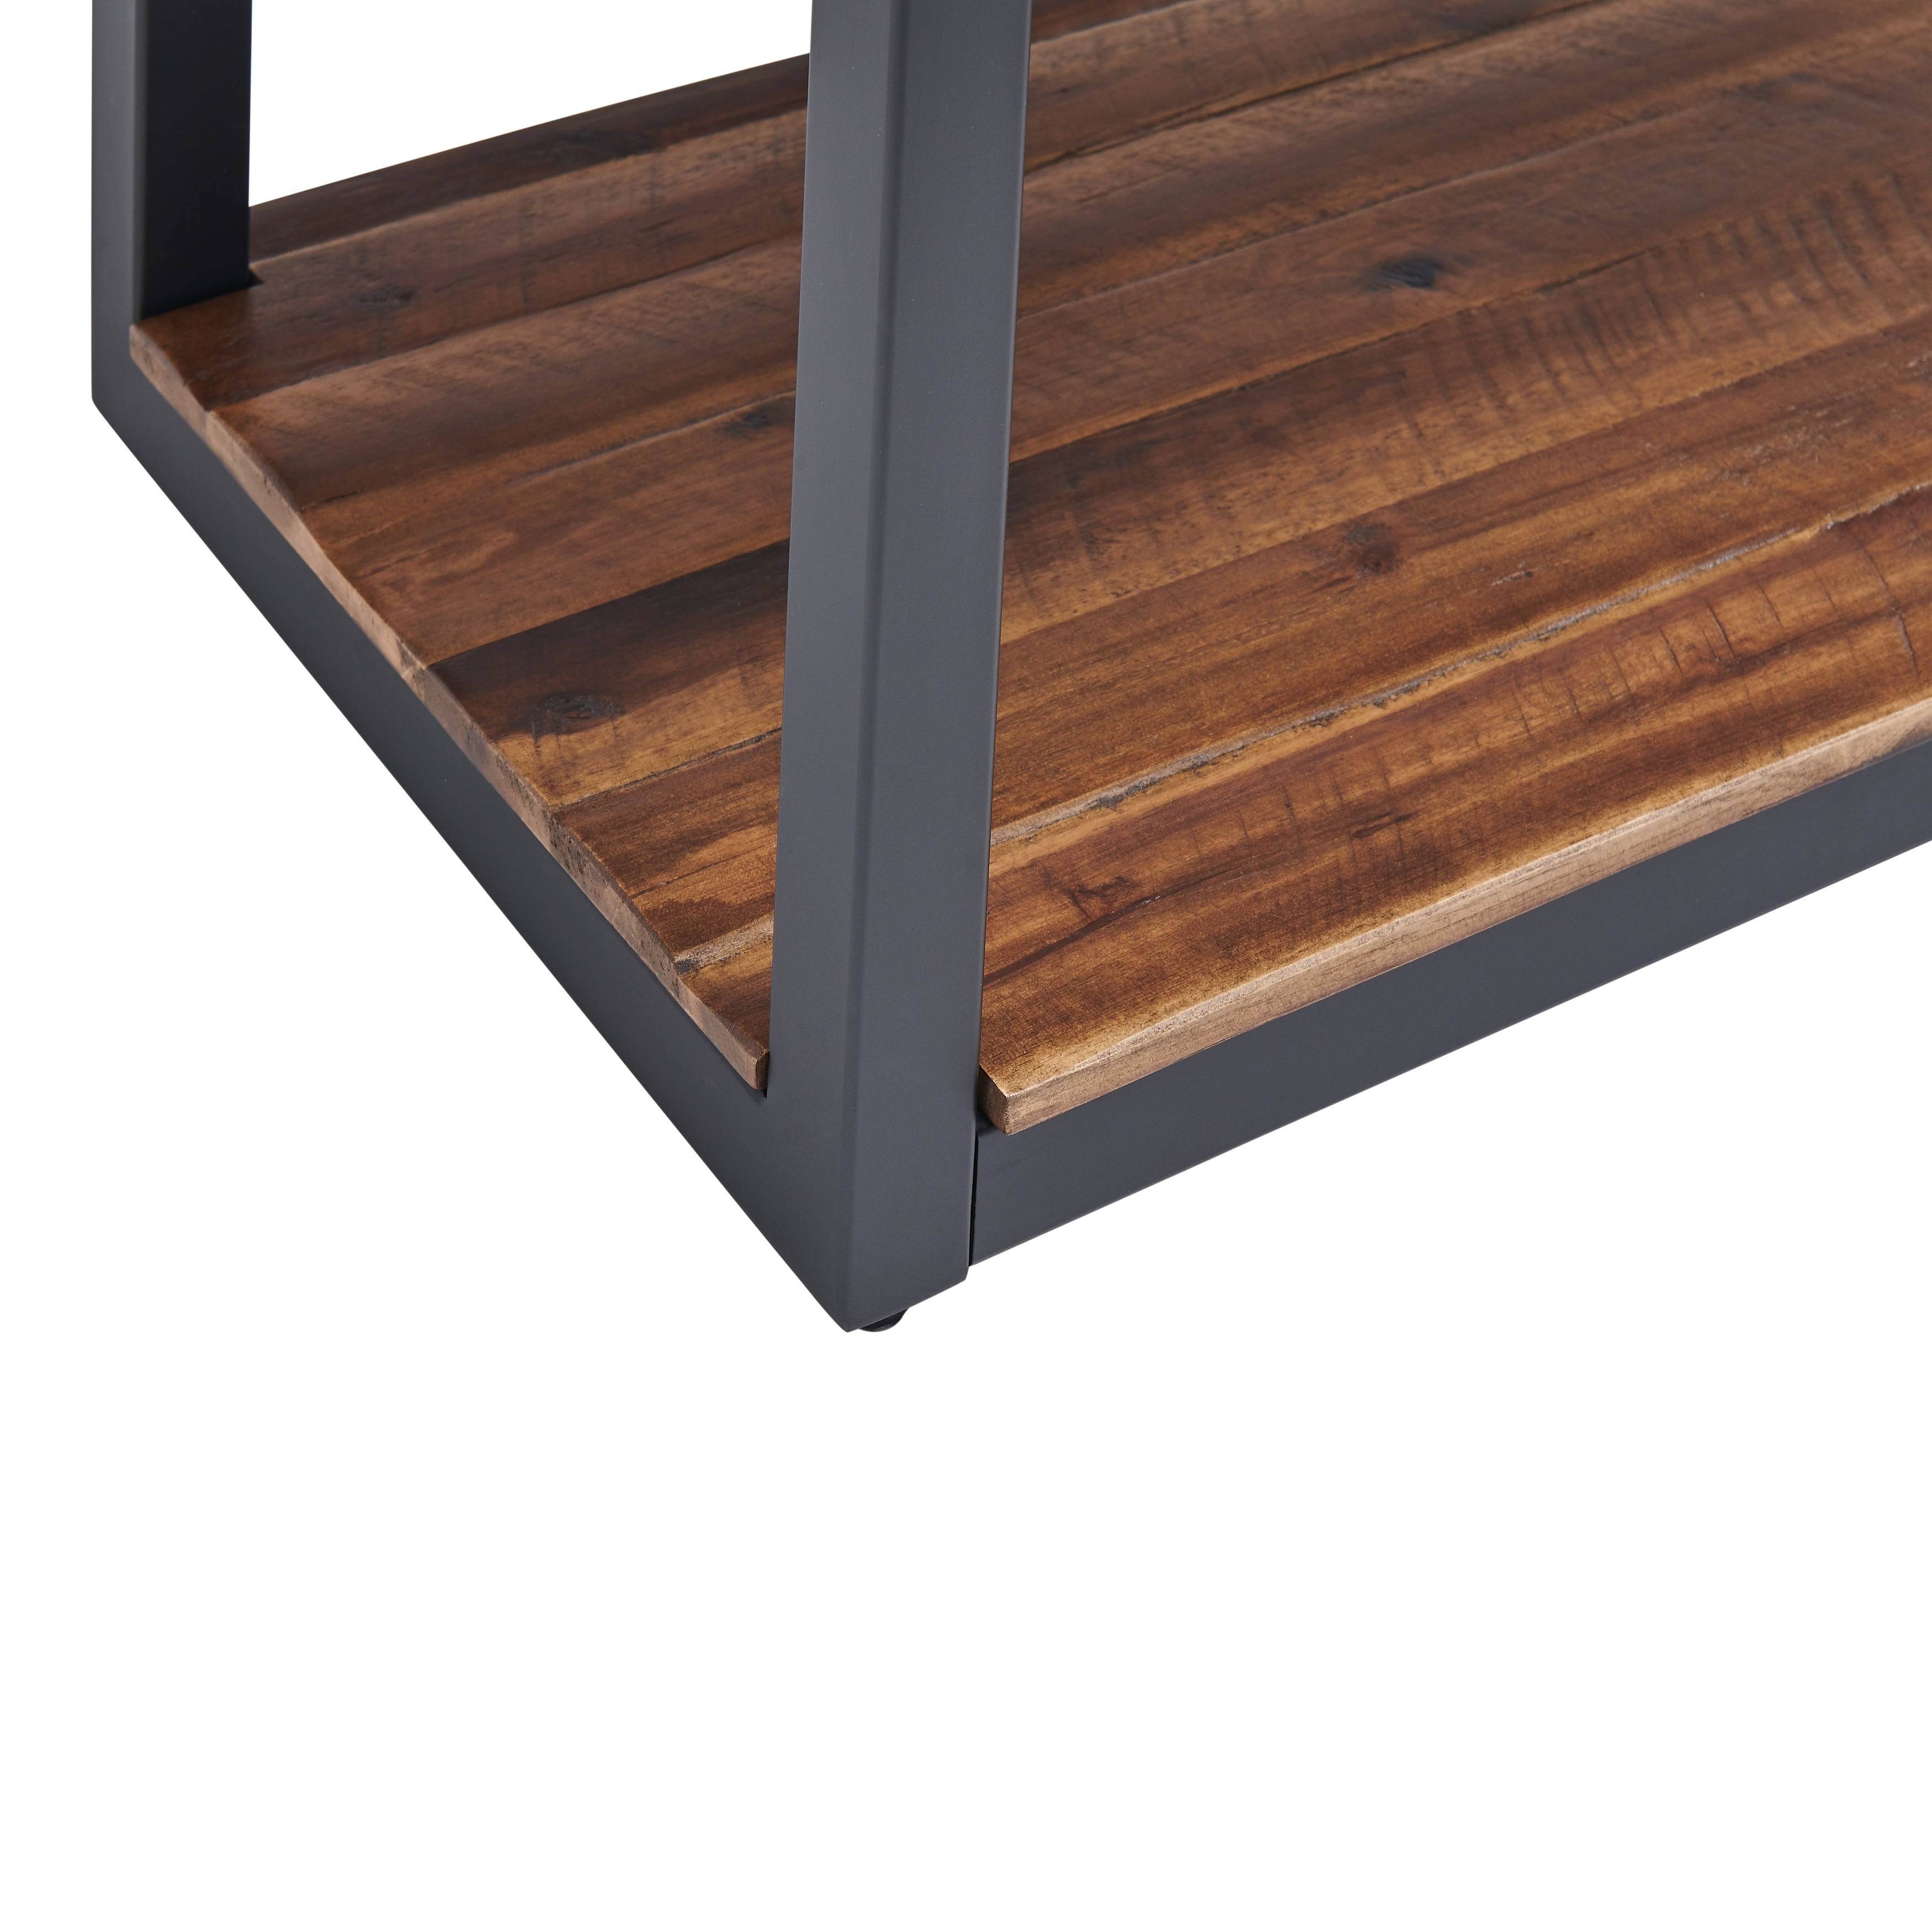 Carbon Loft Ciaravino 43 Inch Rustic Wood Console Table W 2 Drawers And 1 Shelf On Sale Overstock 29871416